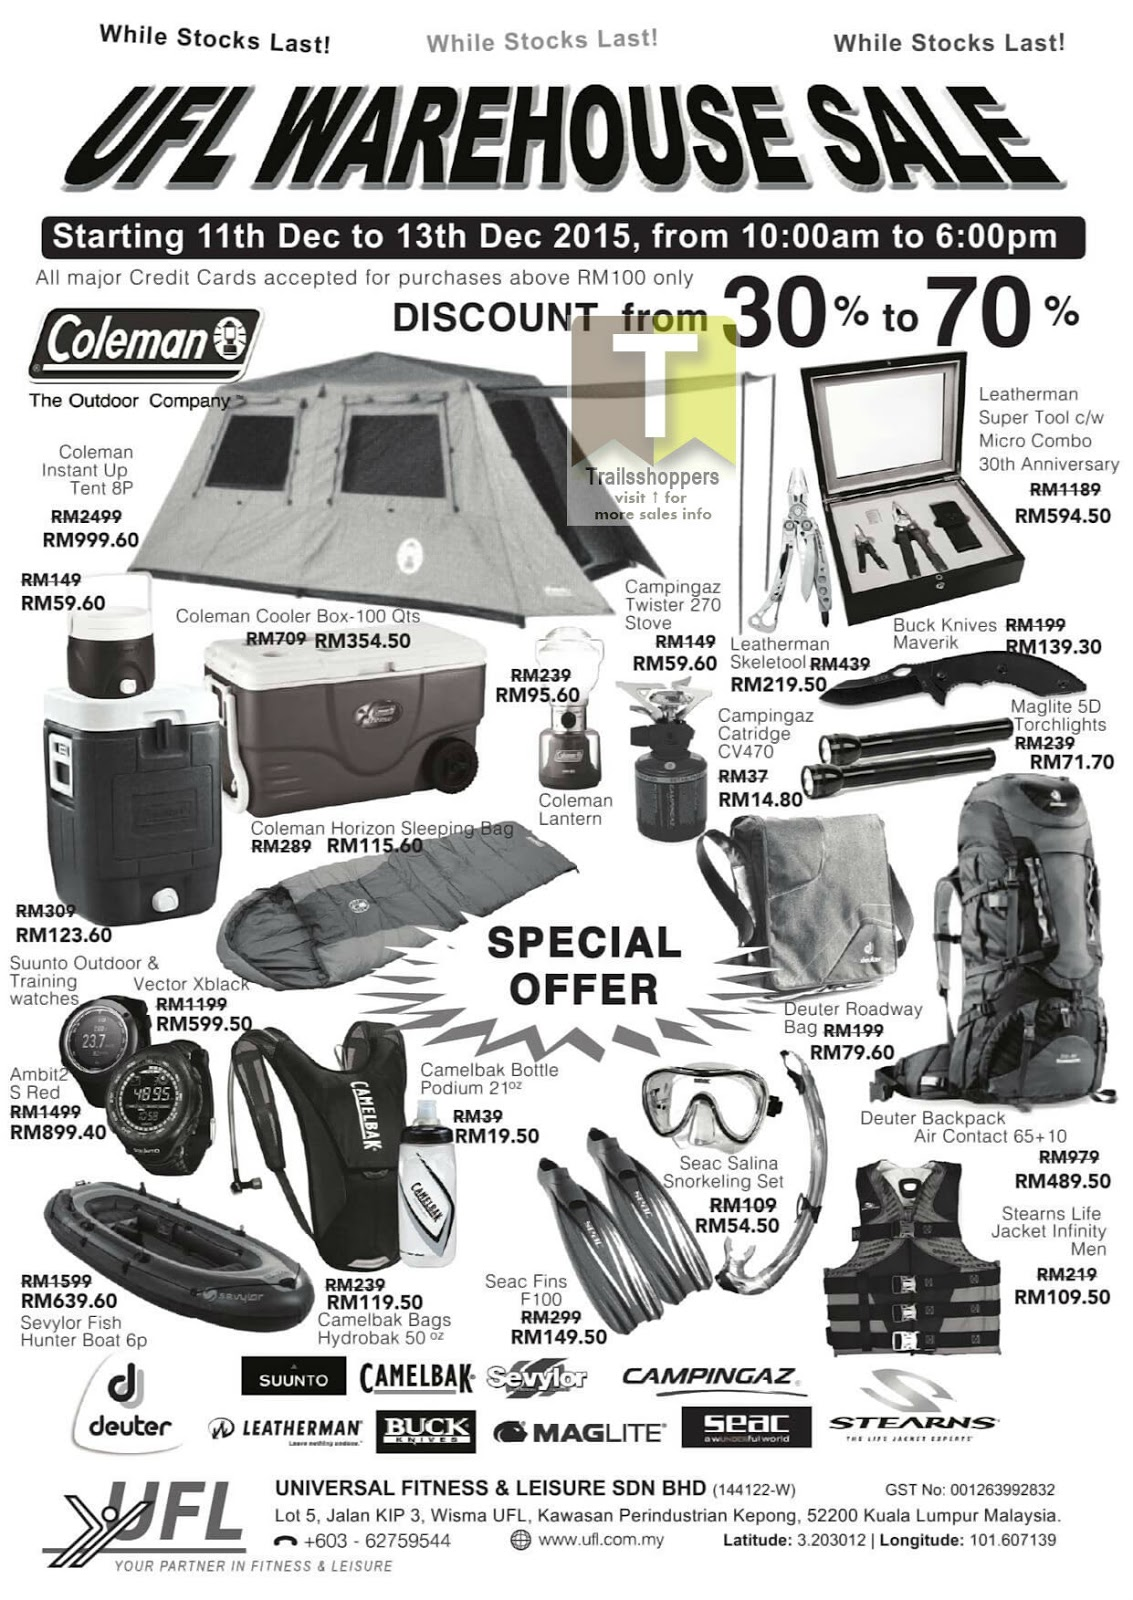 UFL Warehouse Sale offer kepong kl